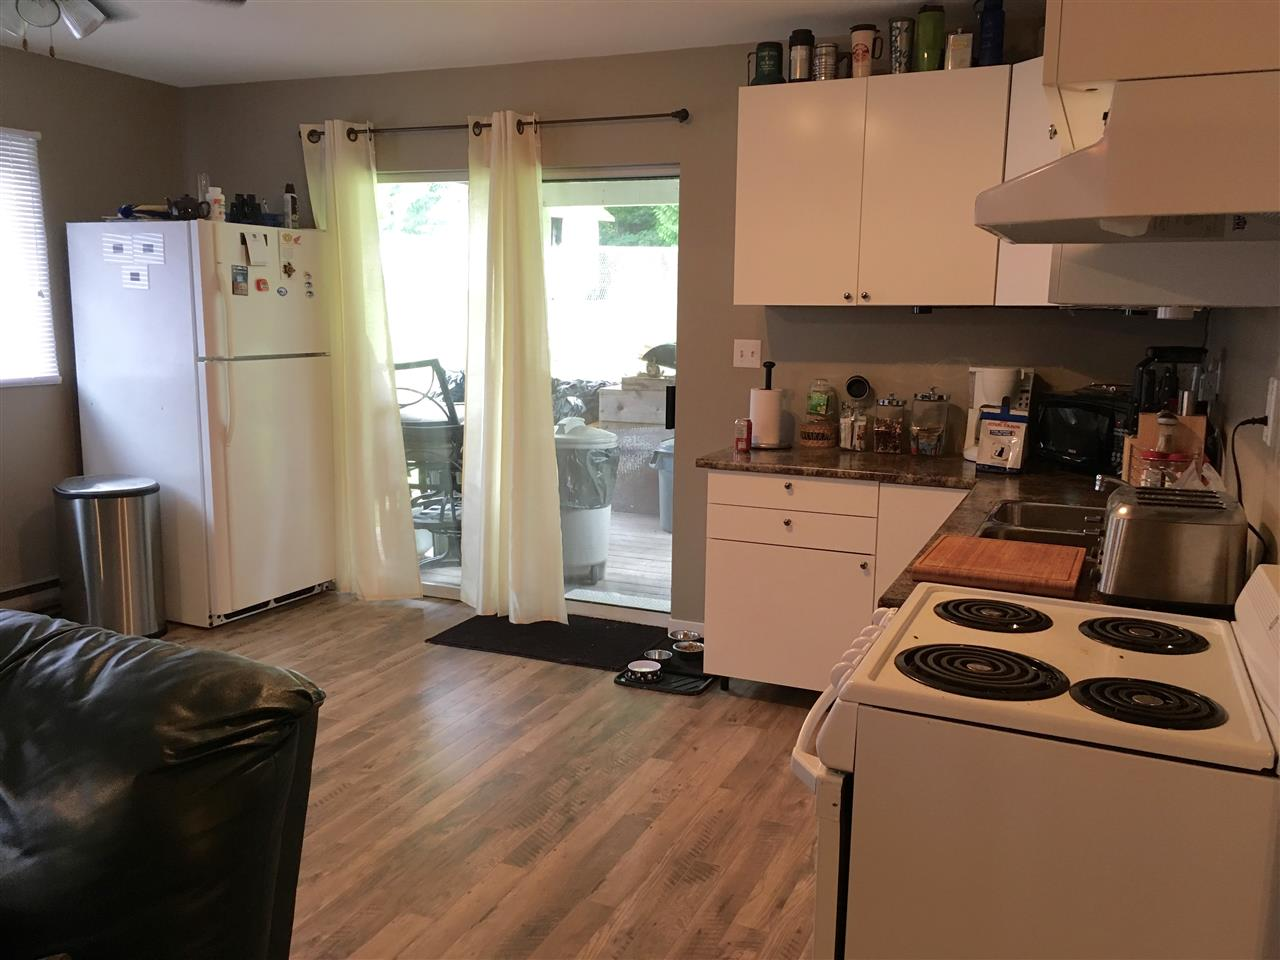 Photo 18: Photos: 1735 JENSEN Road in Gibsons: Gibsons & Area House for sale (Sunshine Coast)  : MLS® # R2098753